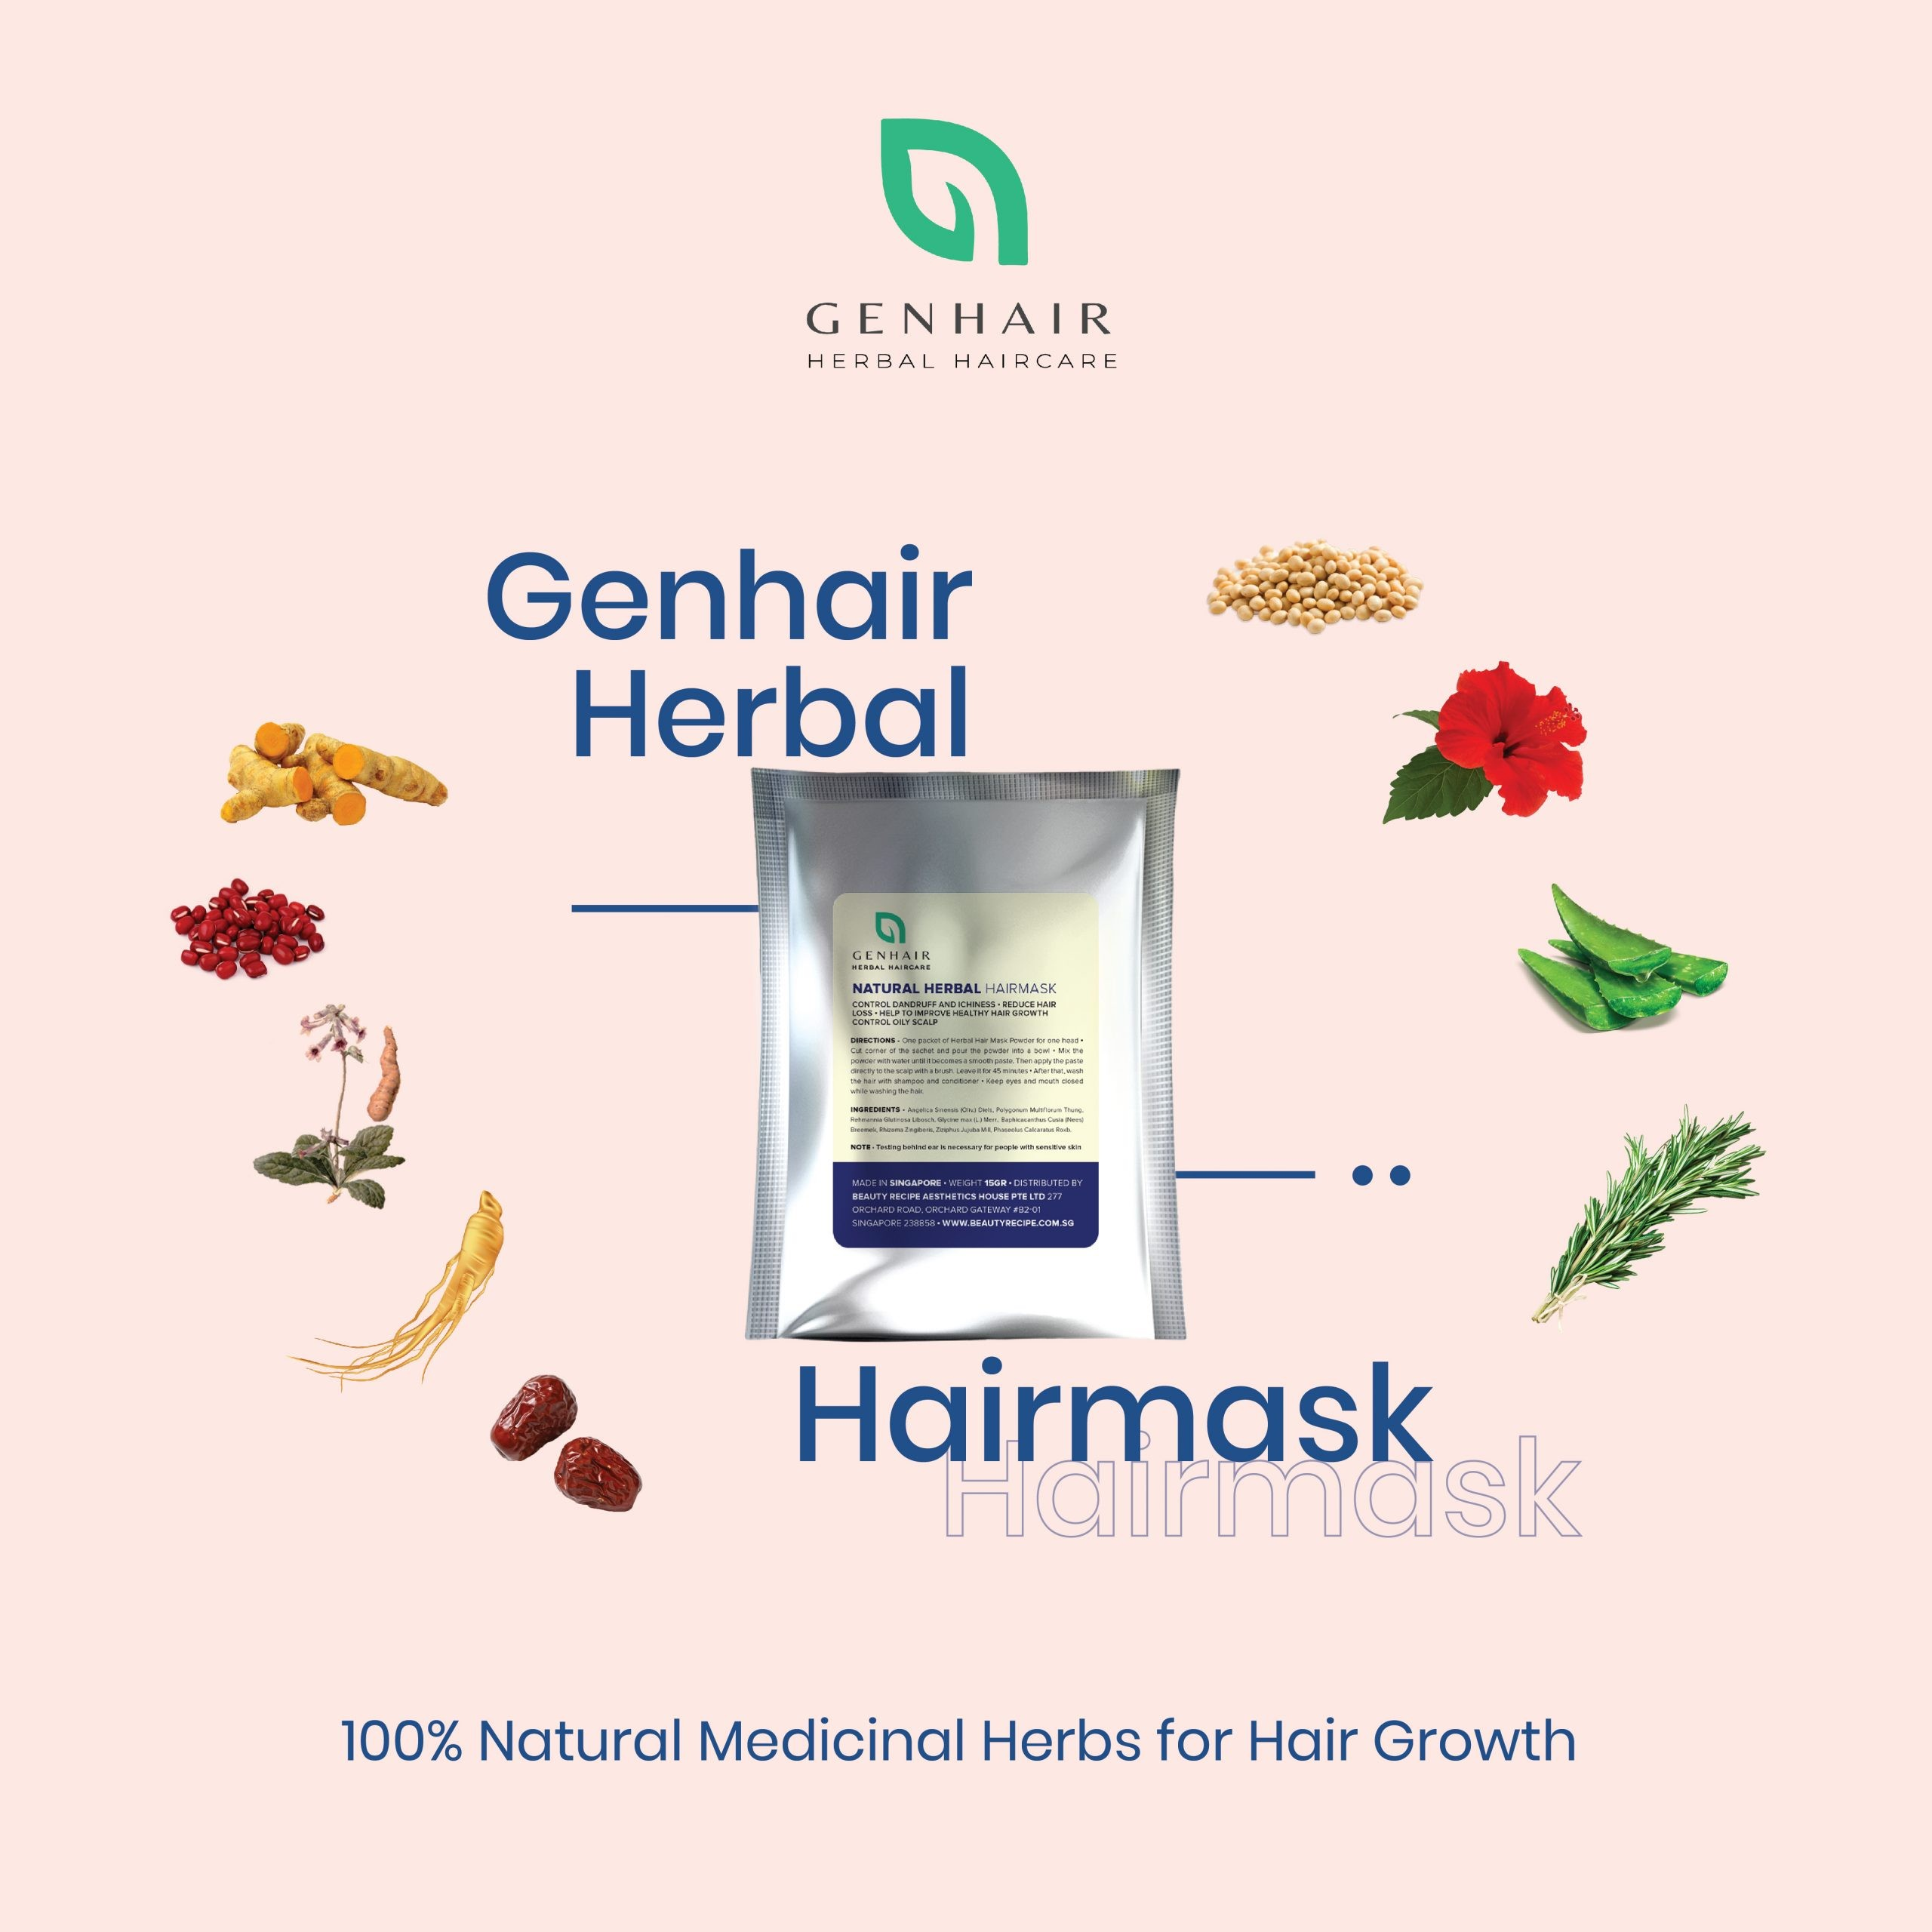 herbal hair scalp mask hair loss grow hair